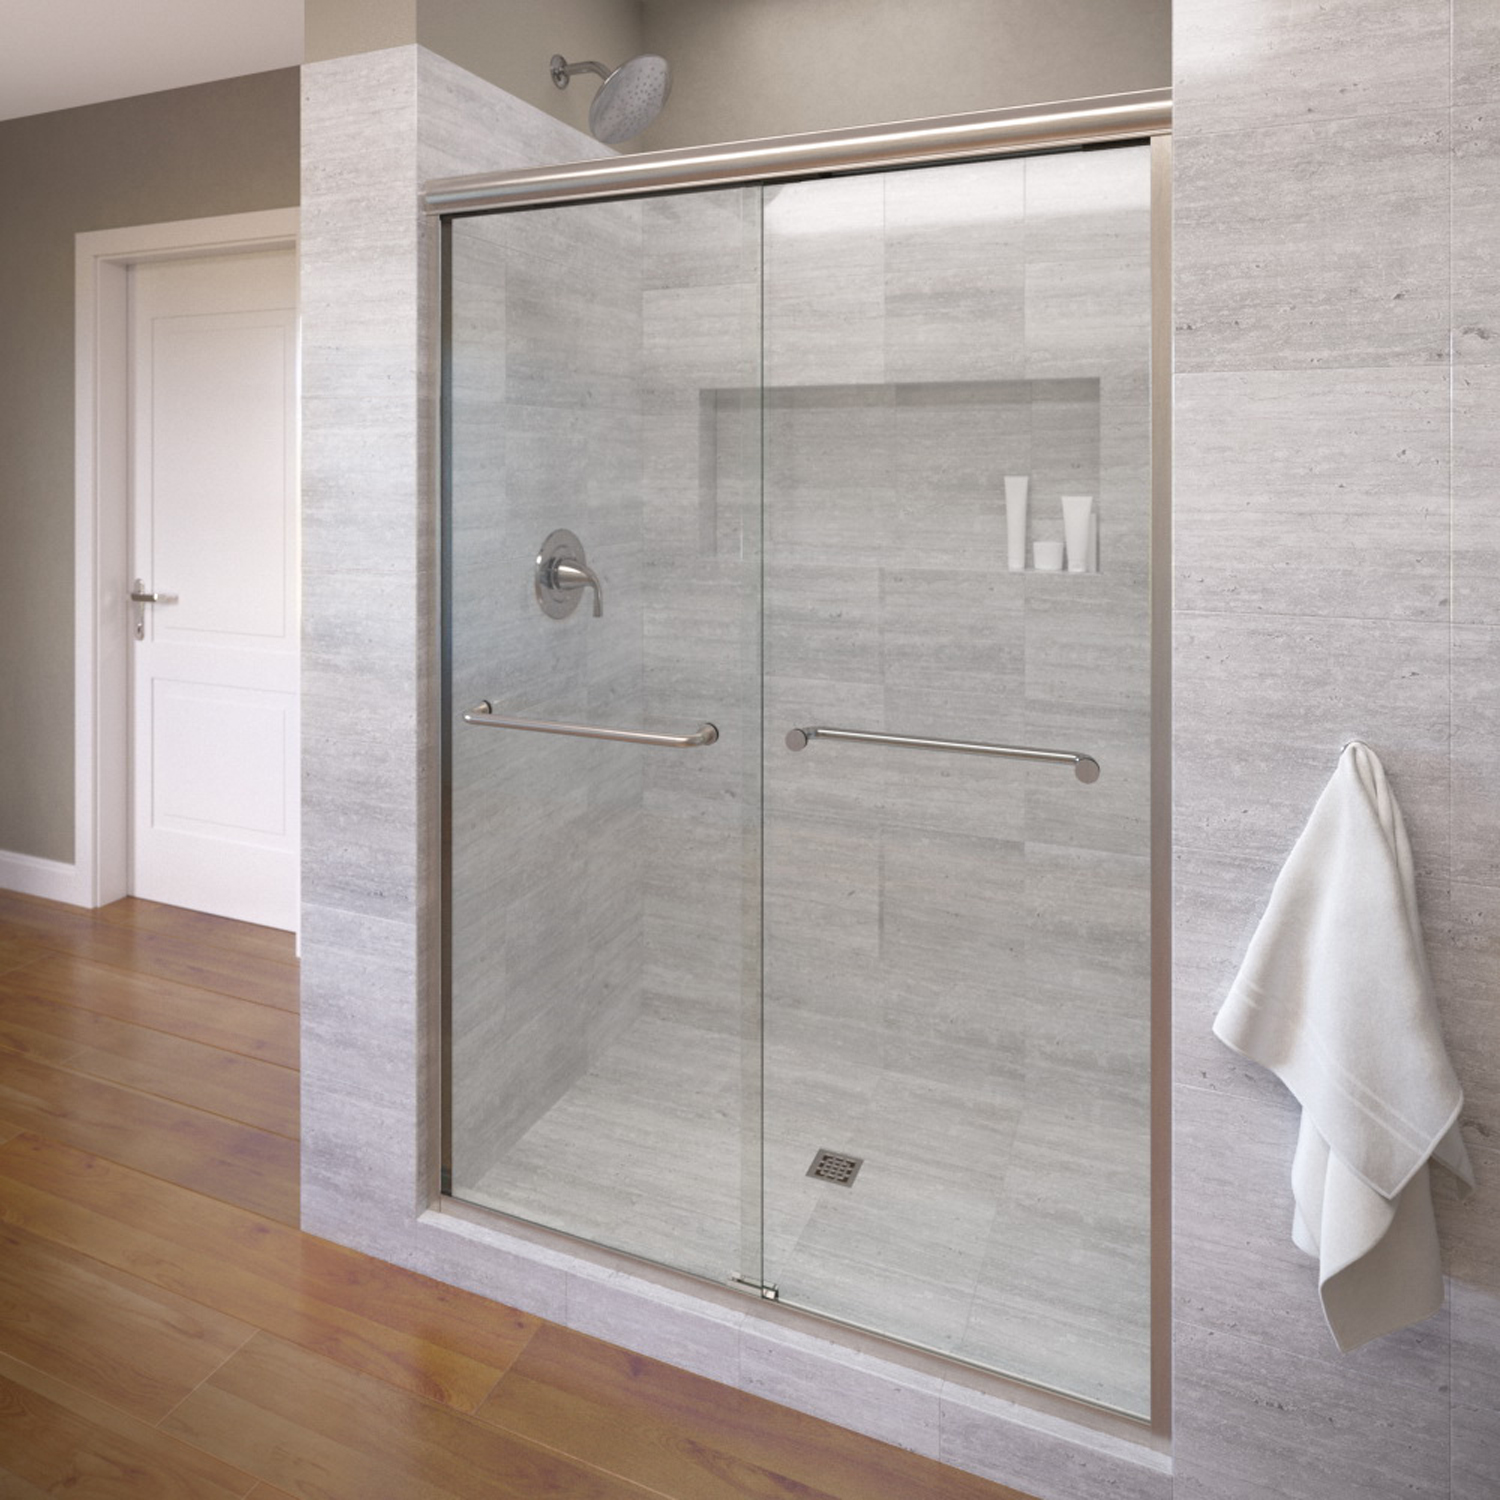 Basco 4500 60clbn 60 Infinity Sliding Shower Enclosure